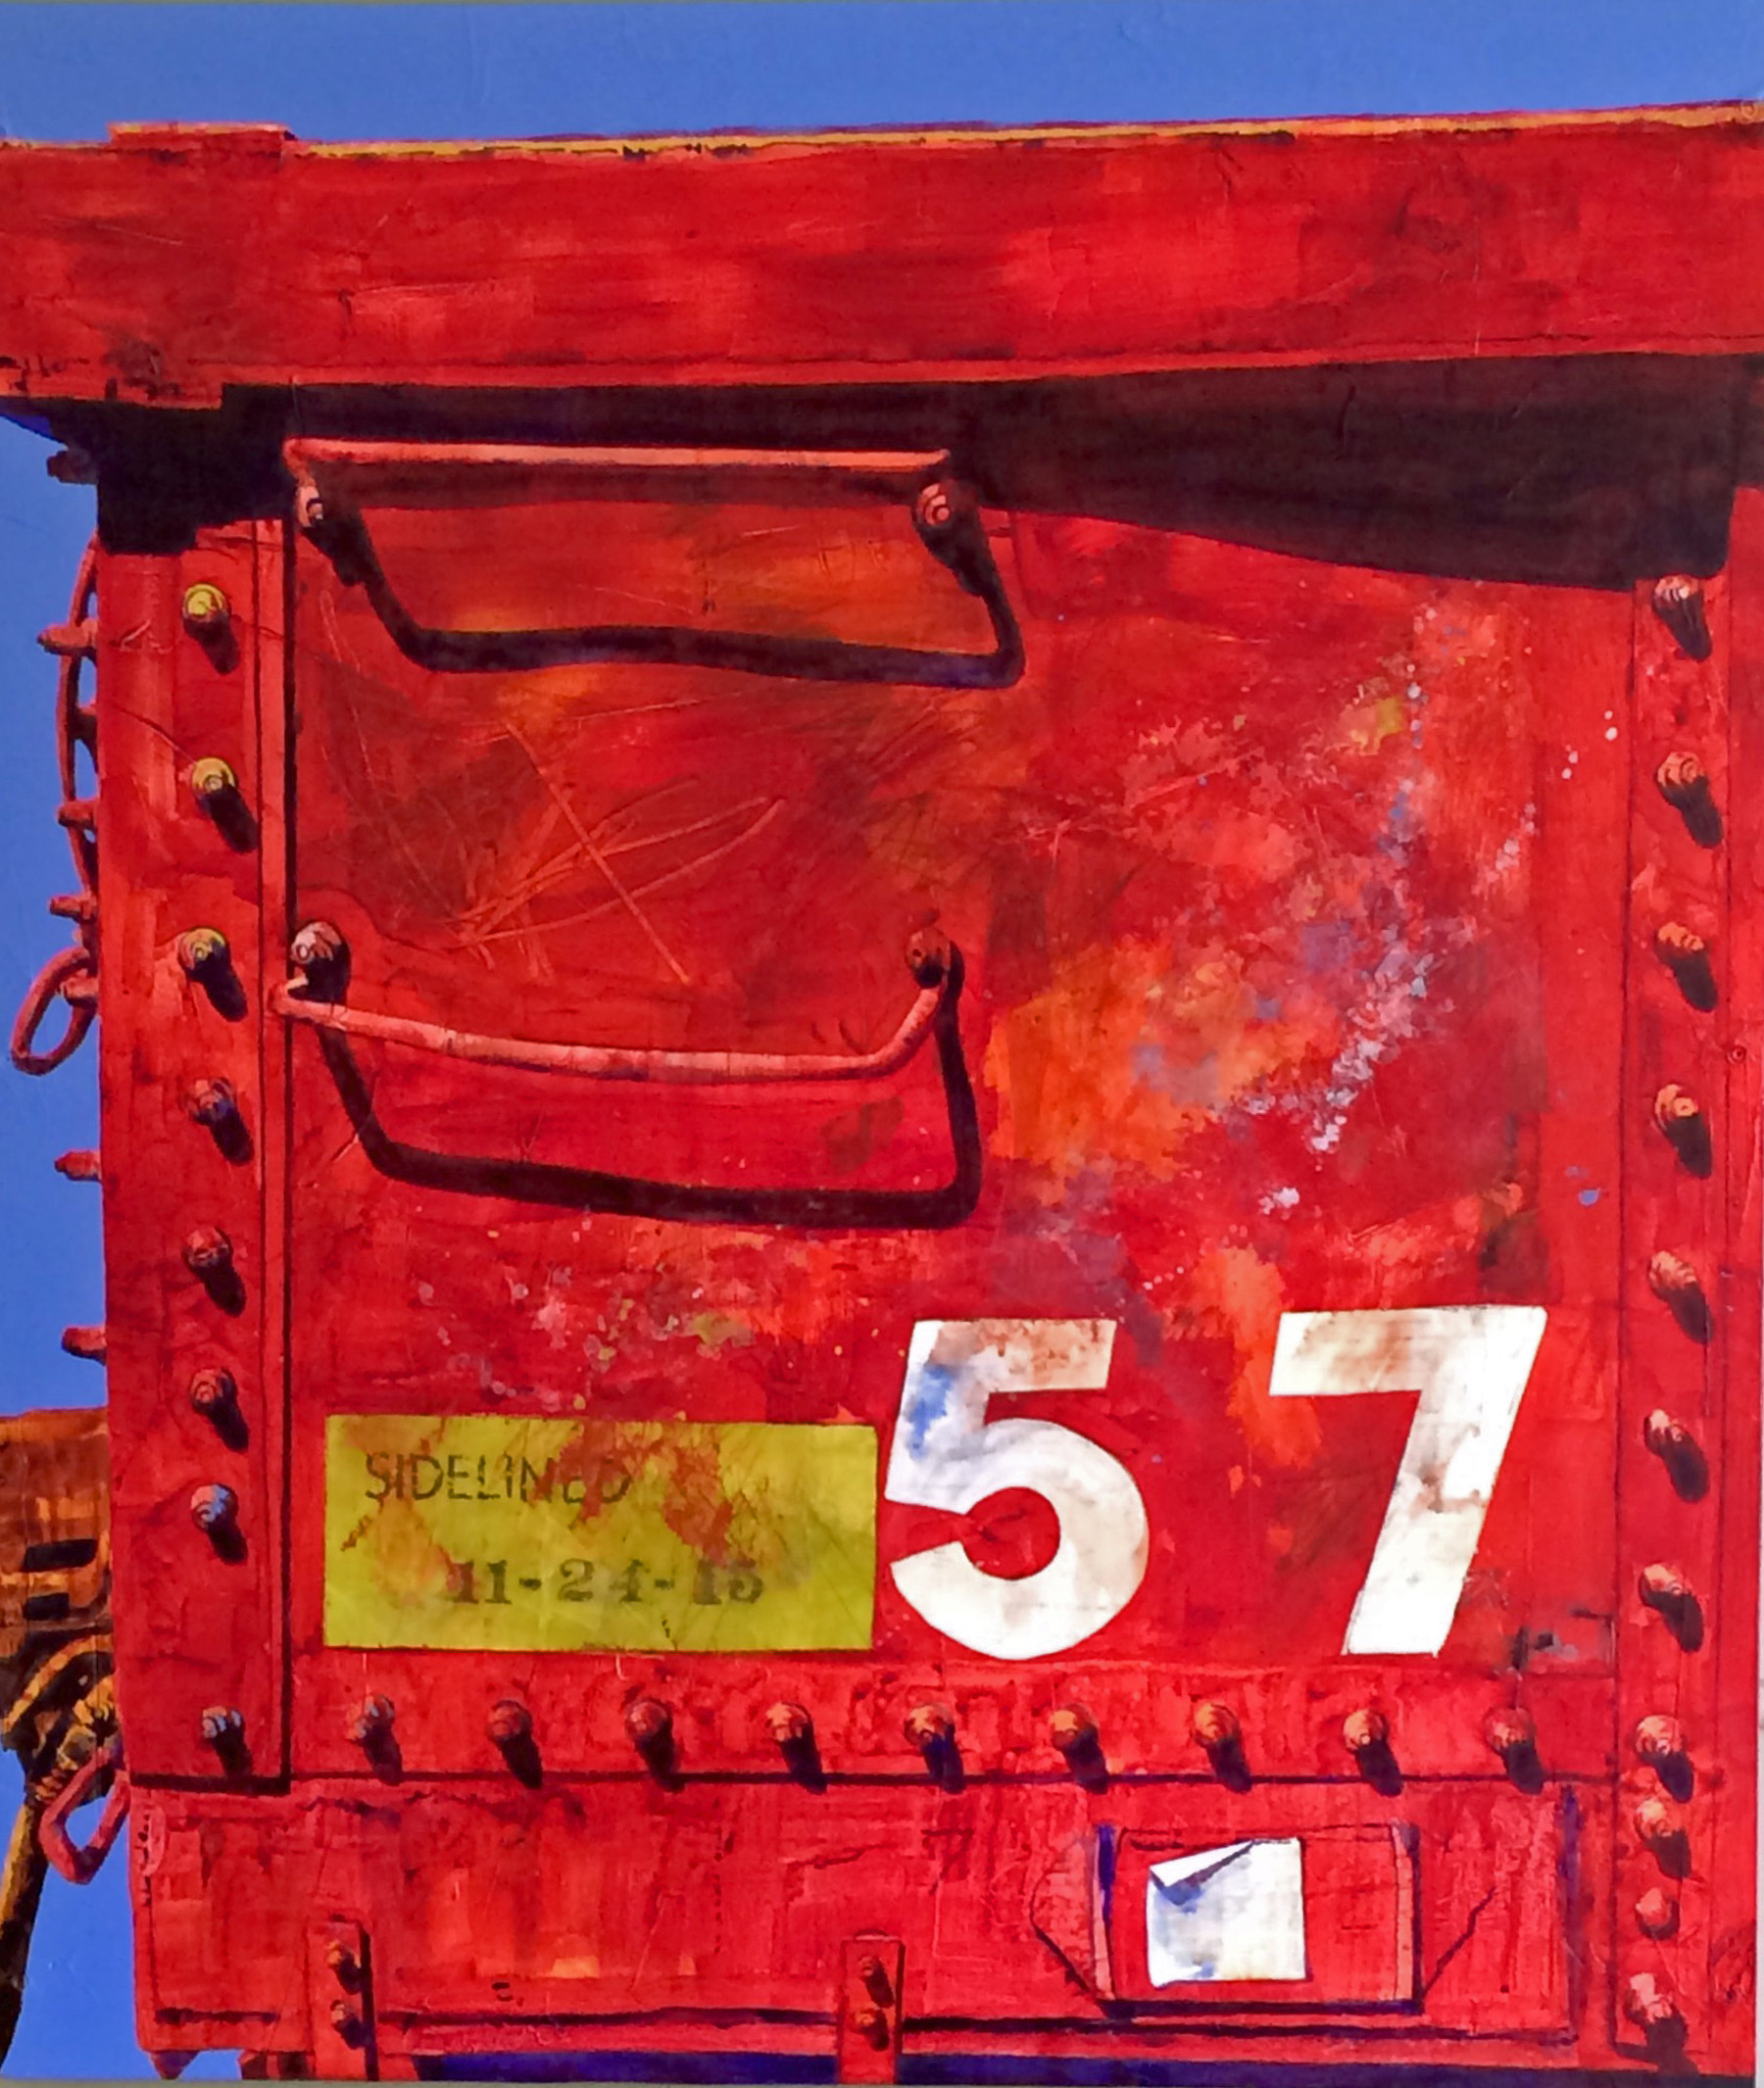 Sidelined Again   2017 Award of Excellence  New River Art Show Floyd, Virginia